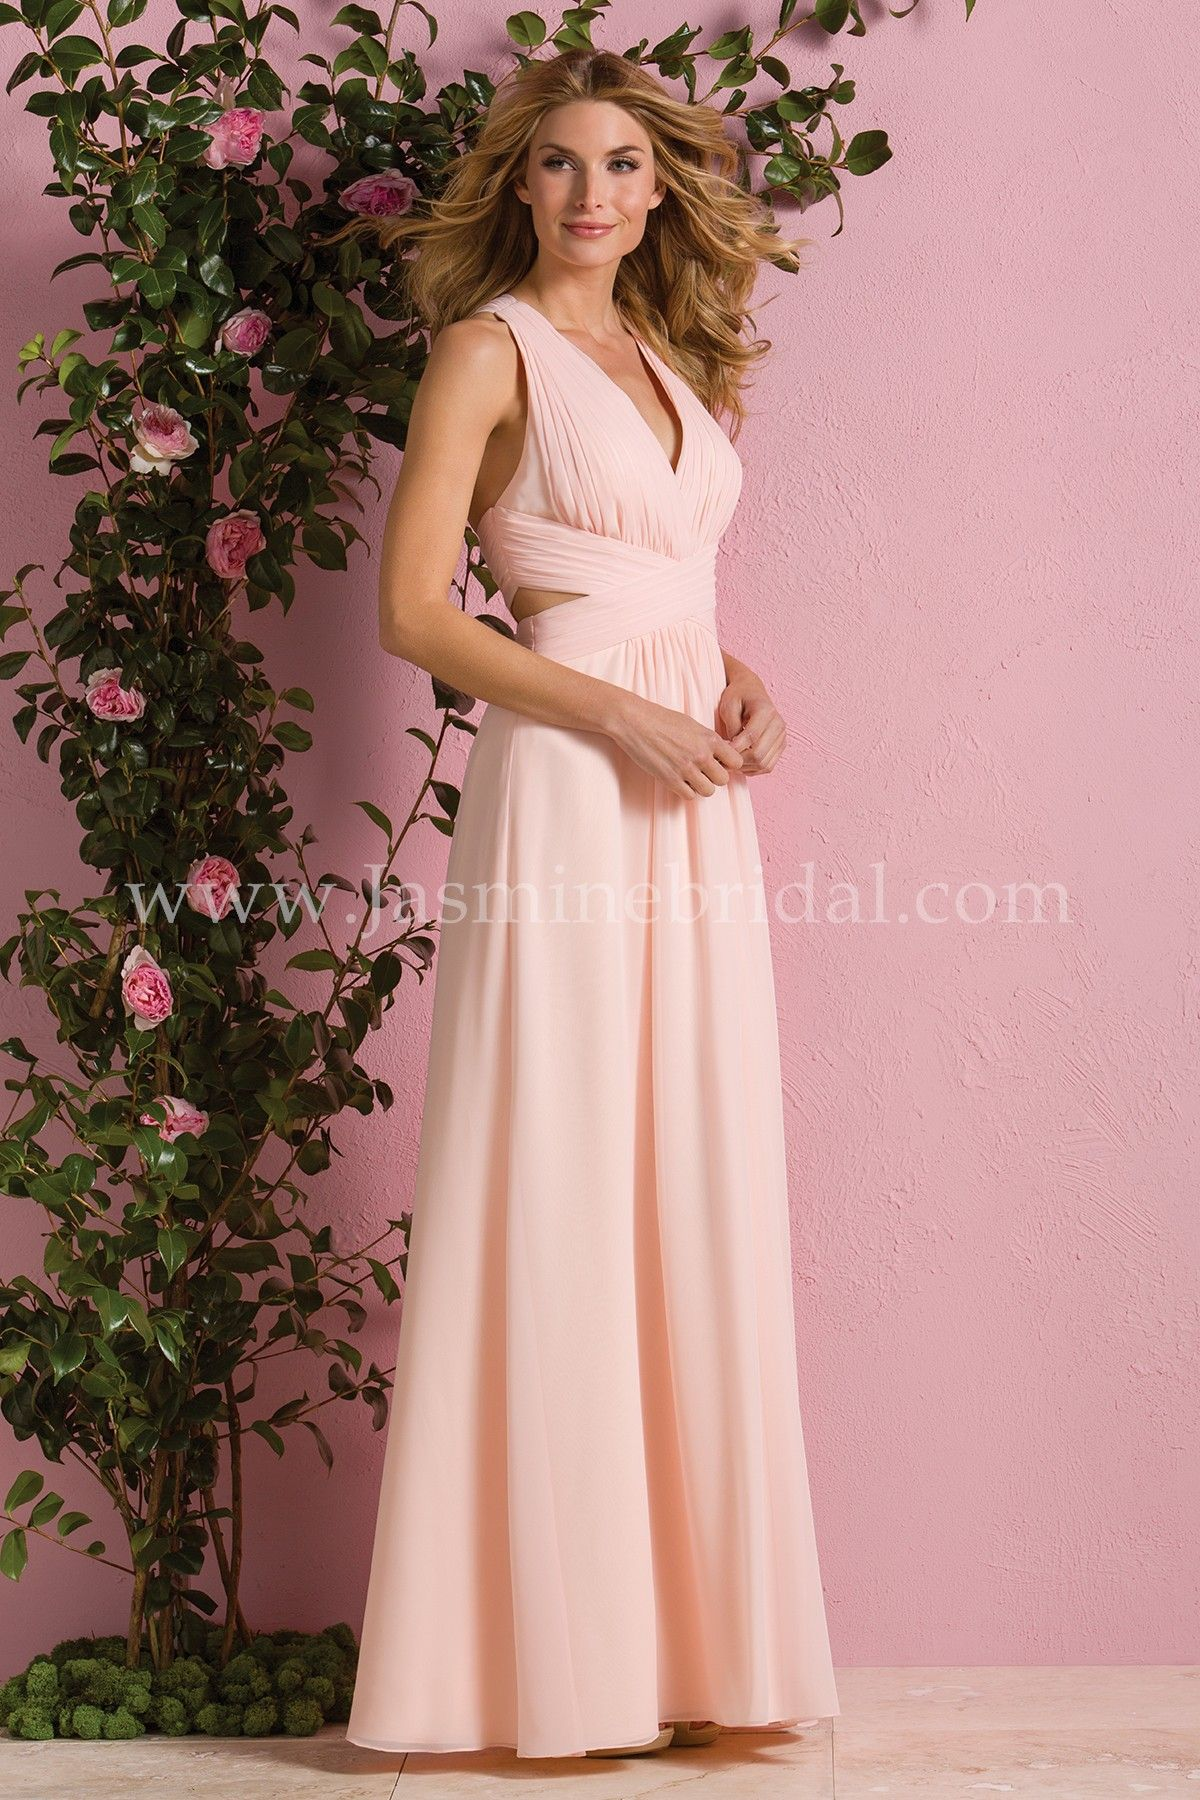 Jasmine bridal bridesmaid dress b2 style b173051 in dreamsicle jasmine bridal bridesmaid dress b2 style b173051 in dreamsicle simple and elegant this ombrellifo Images